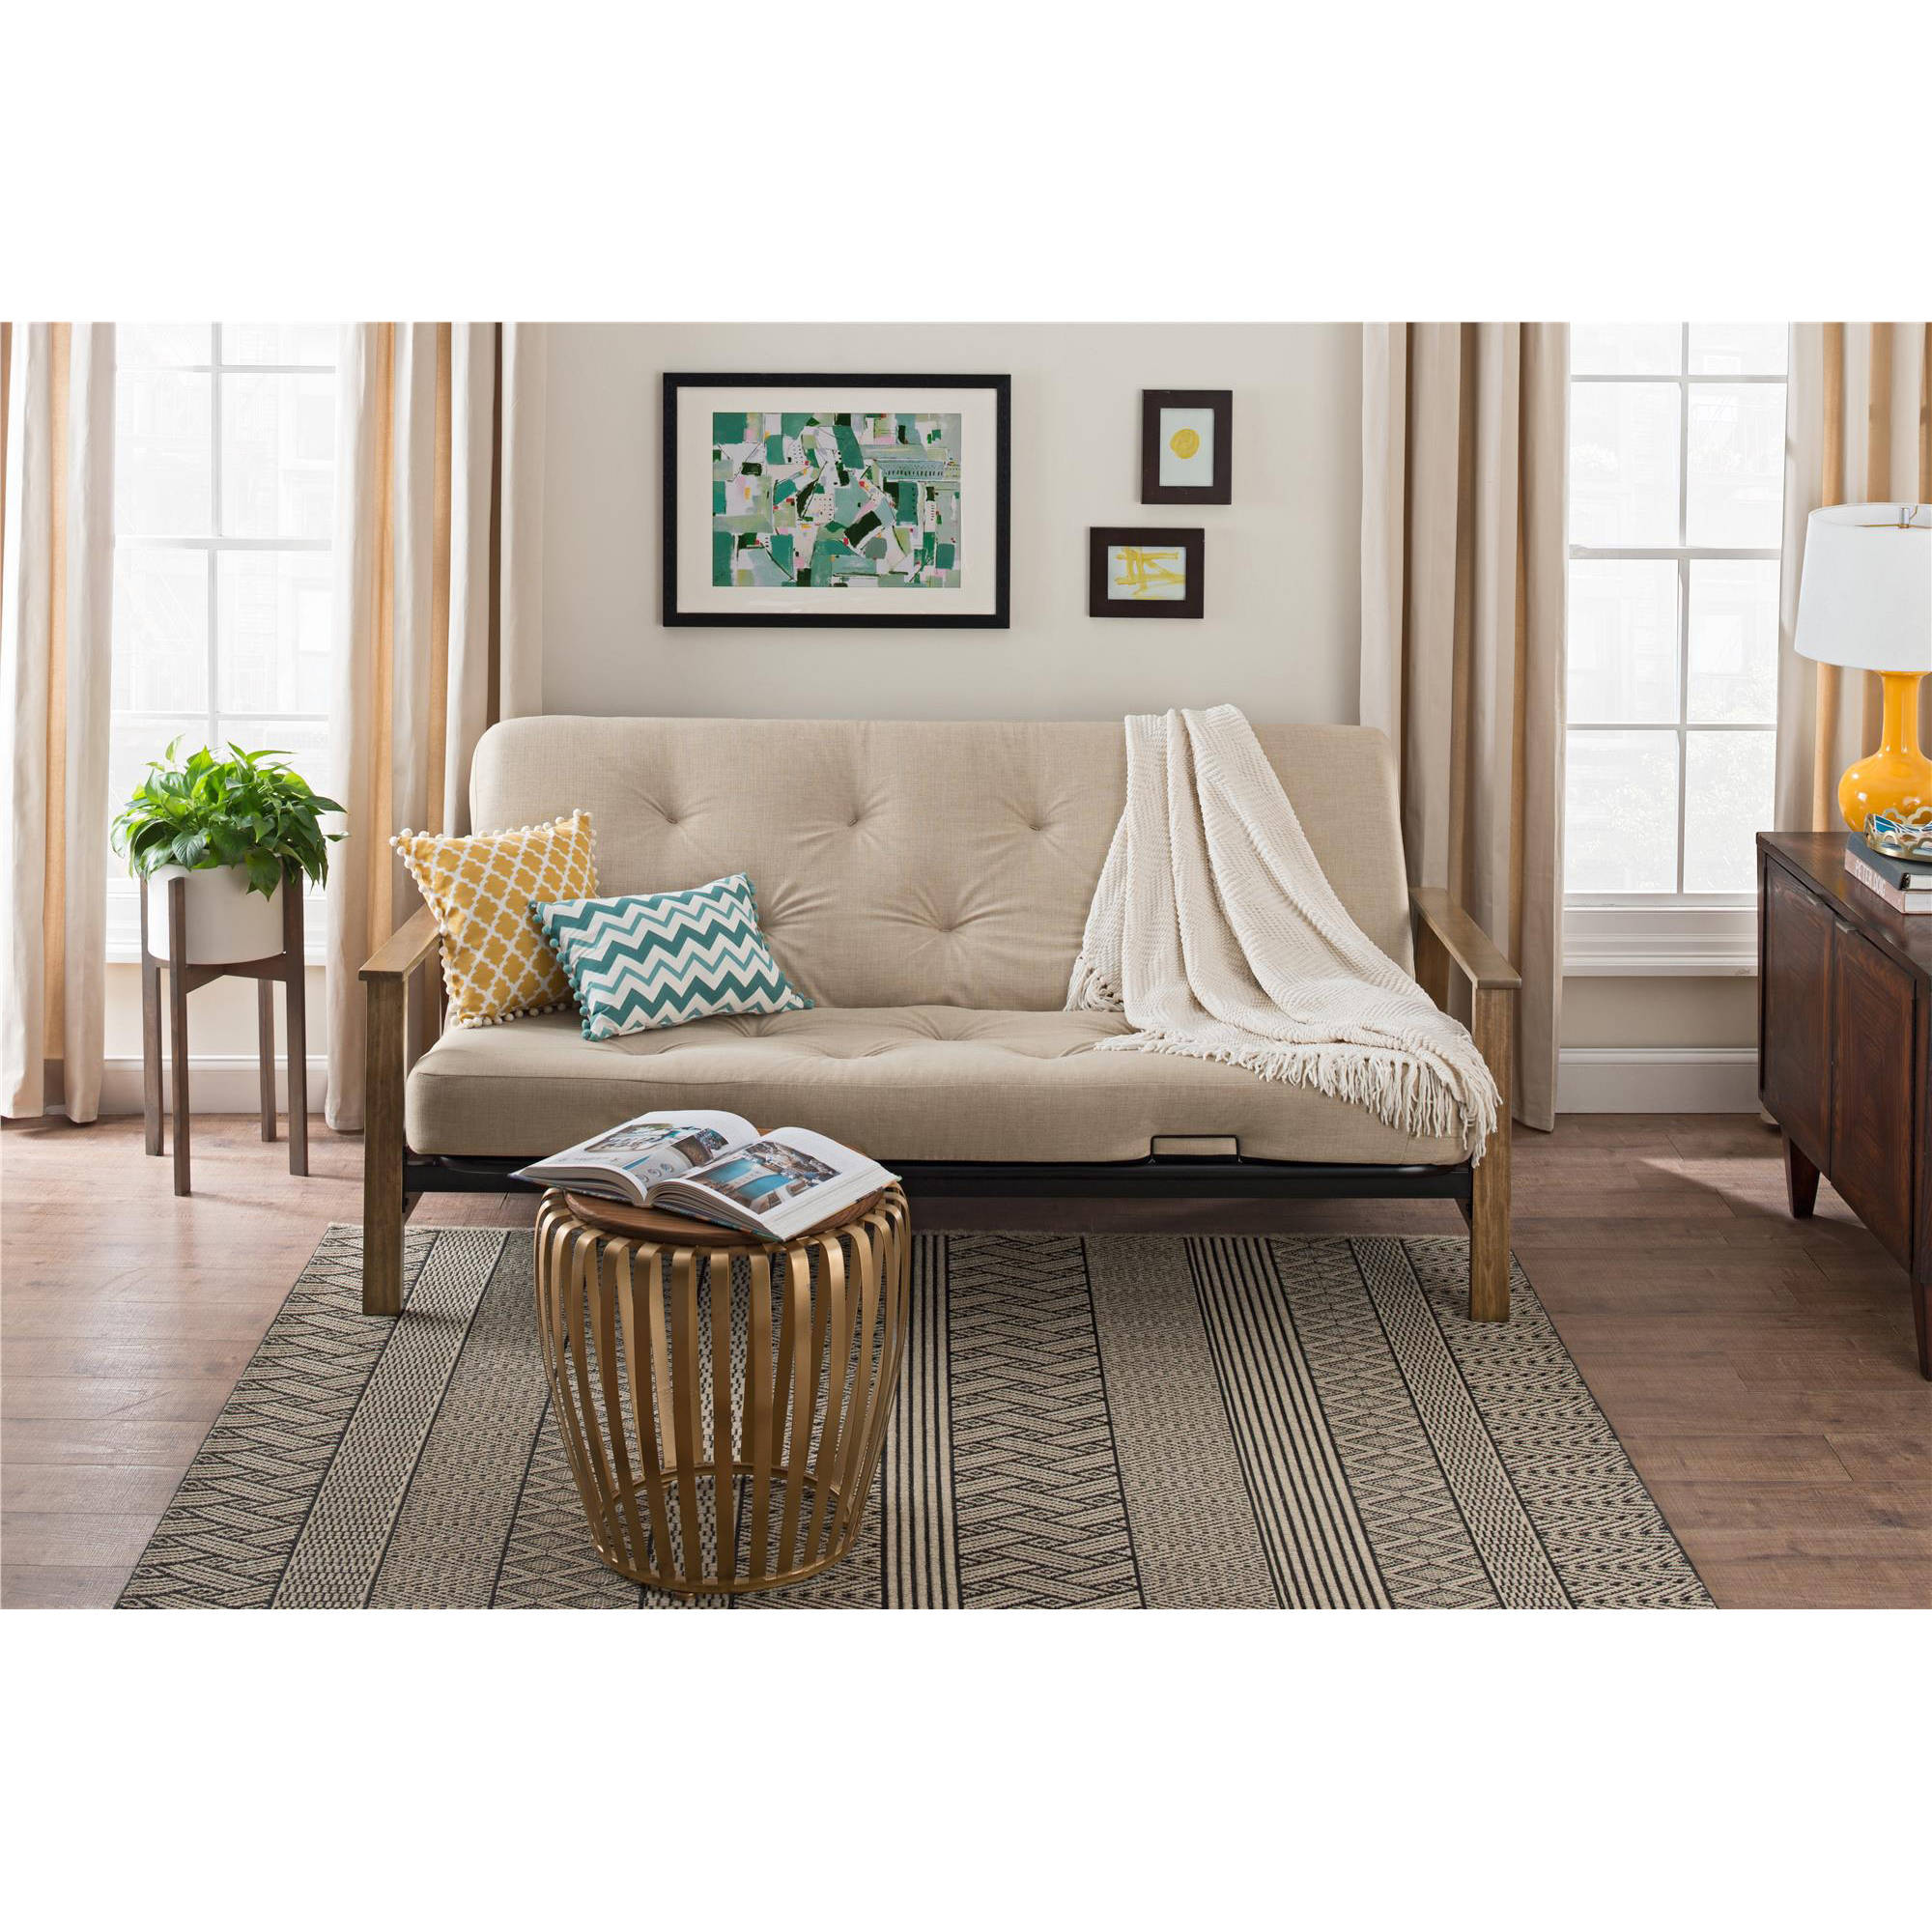 "DHP Bergen Wood Arm Futon with 6"" Coil Mattress, Tan Linen by Dorel Home Products"